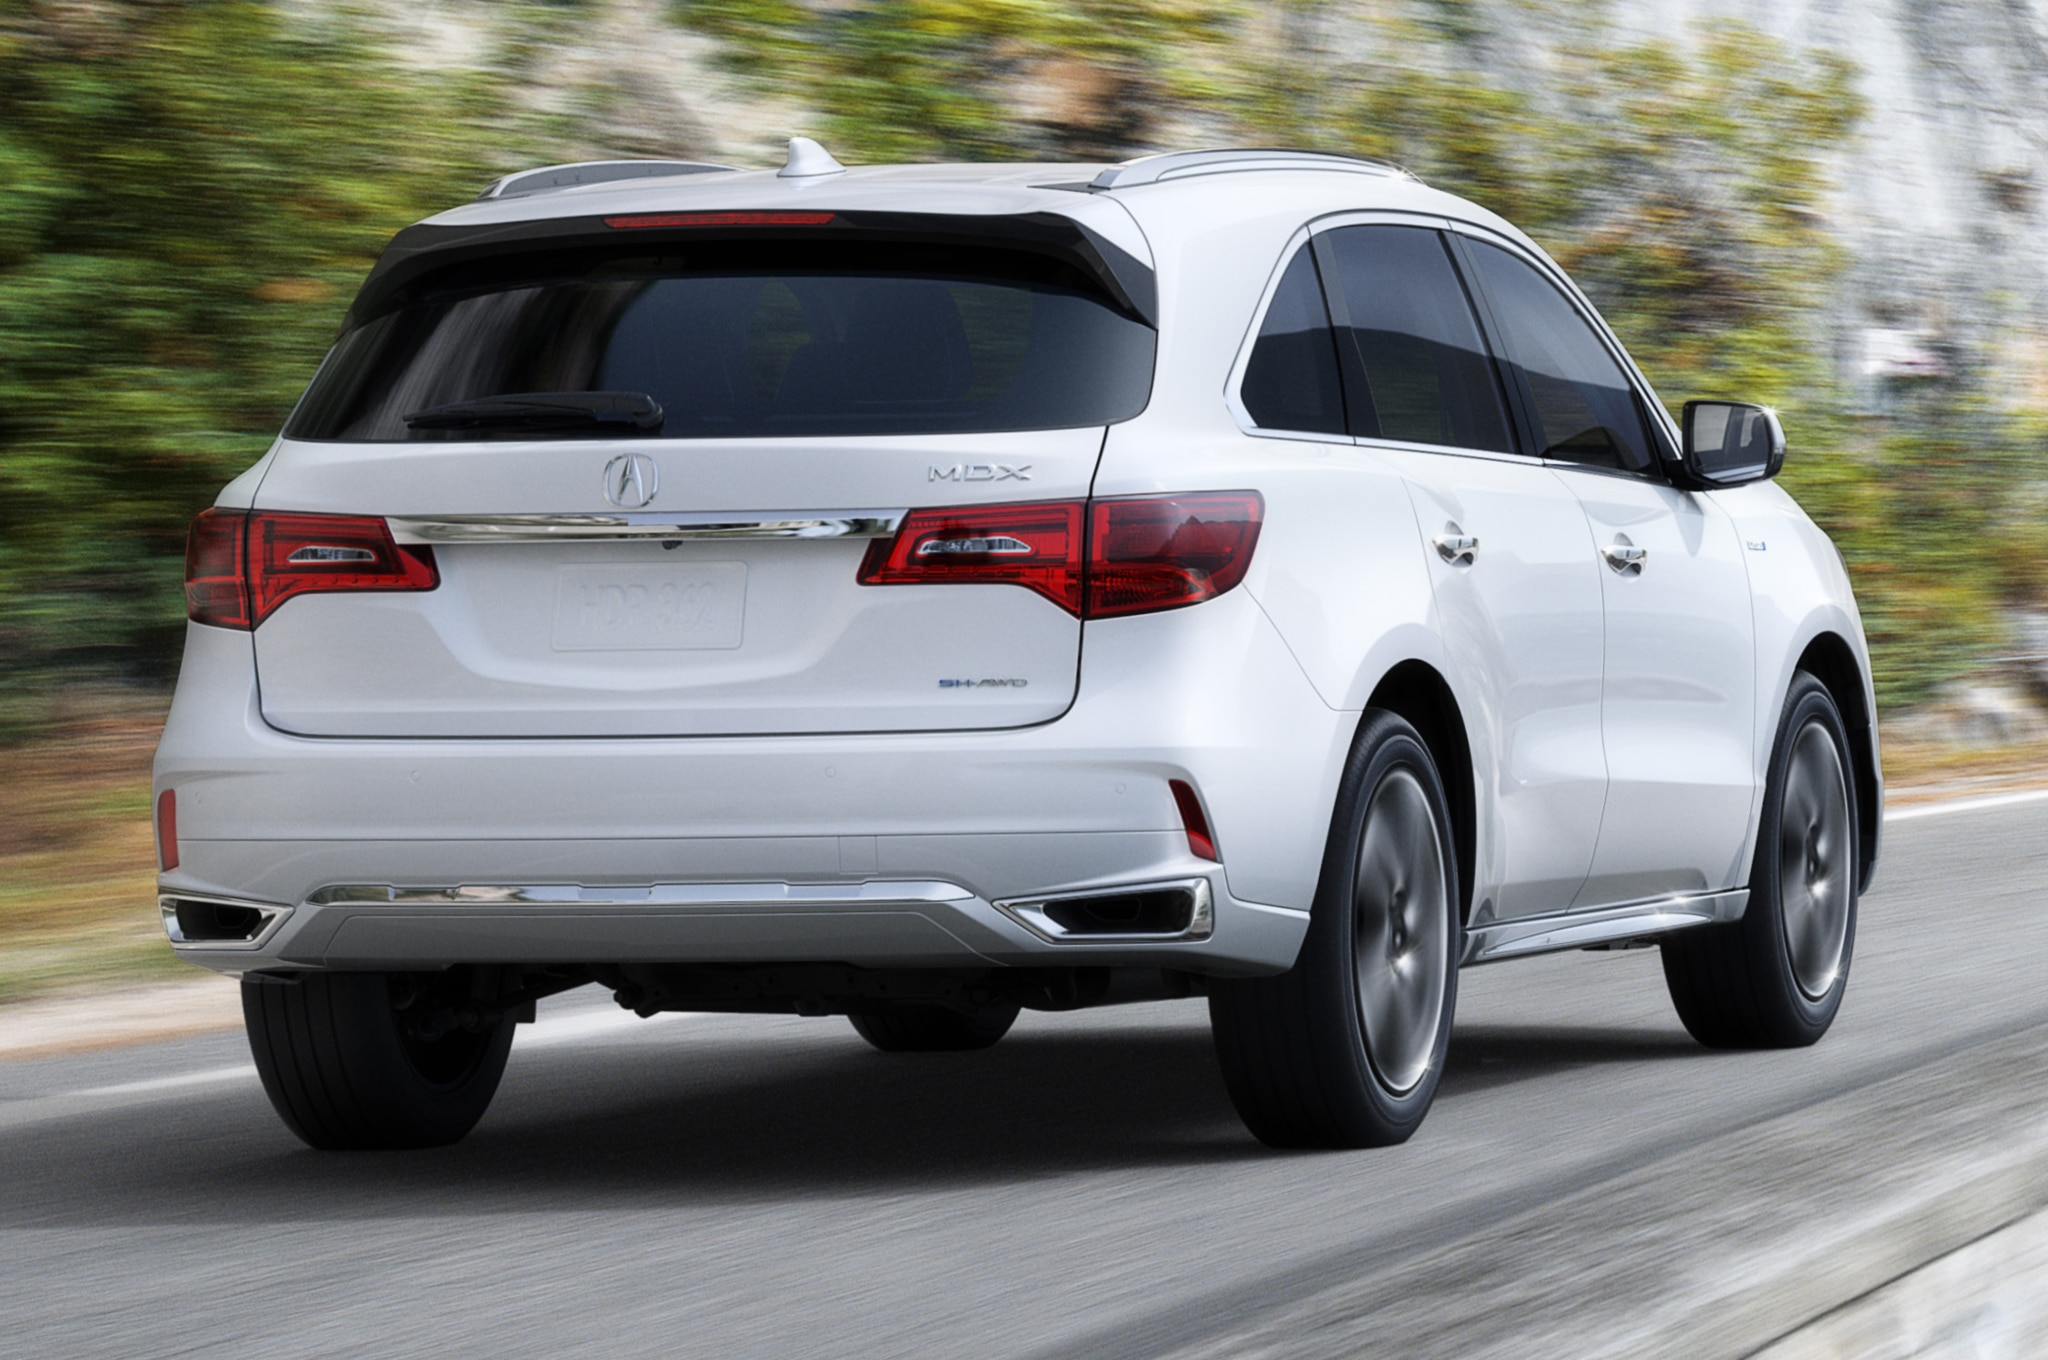 2017 Acura MDX Debuts New Nose, Sport Hybrid Model for New York | Automobile Magazine